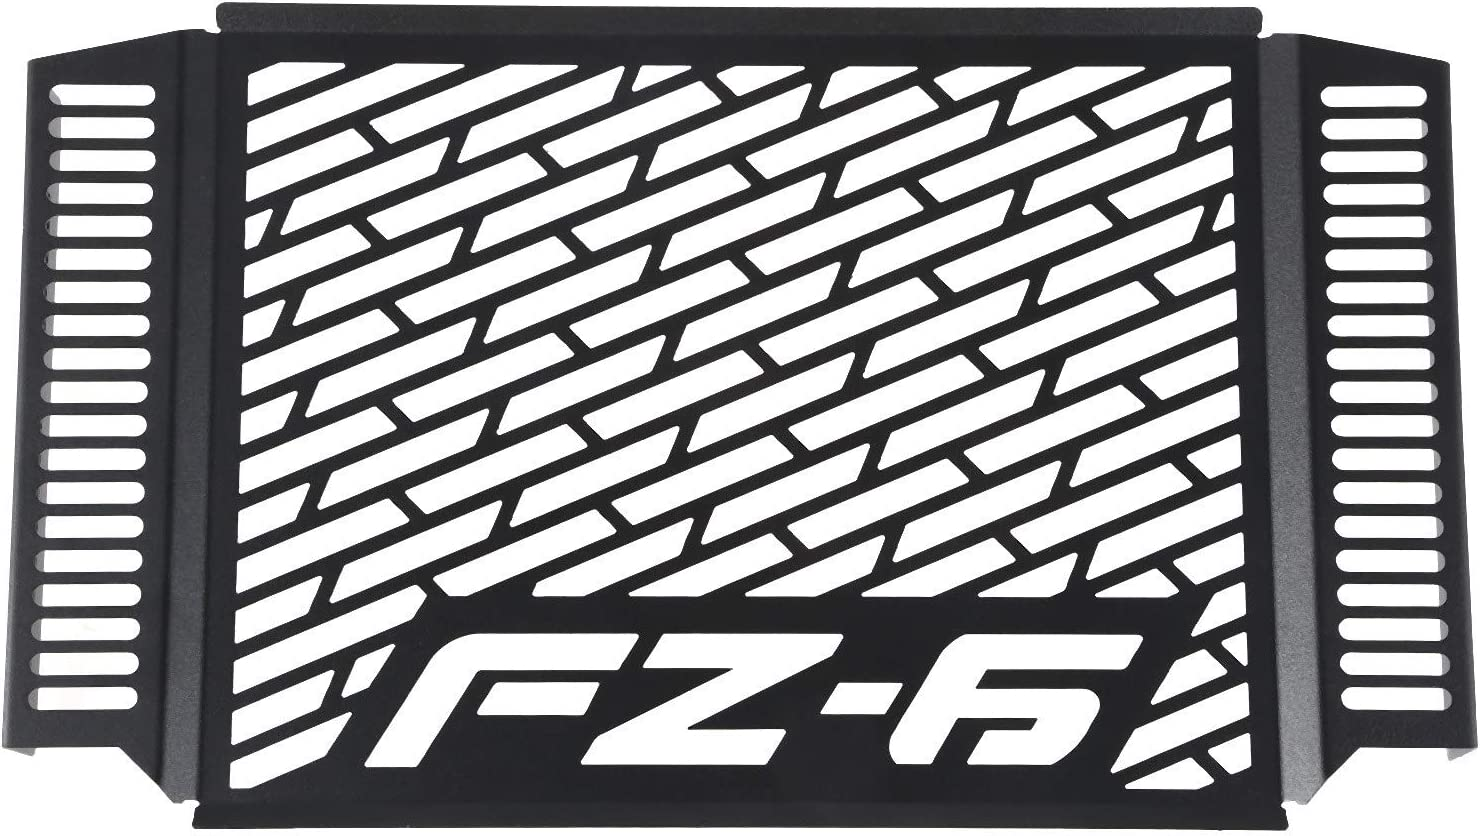 Semoic Motorcycle Radiator Guard Grille Protector Metal Cover Black for FZ6 FZ 6 FAZER 2007-2010 Models